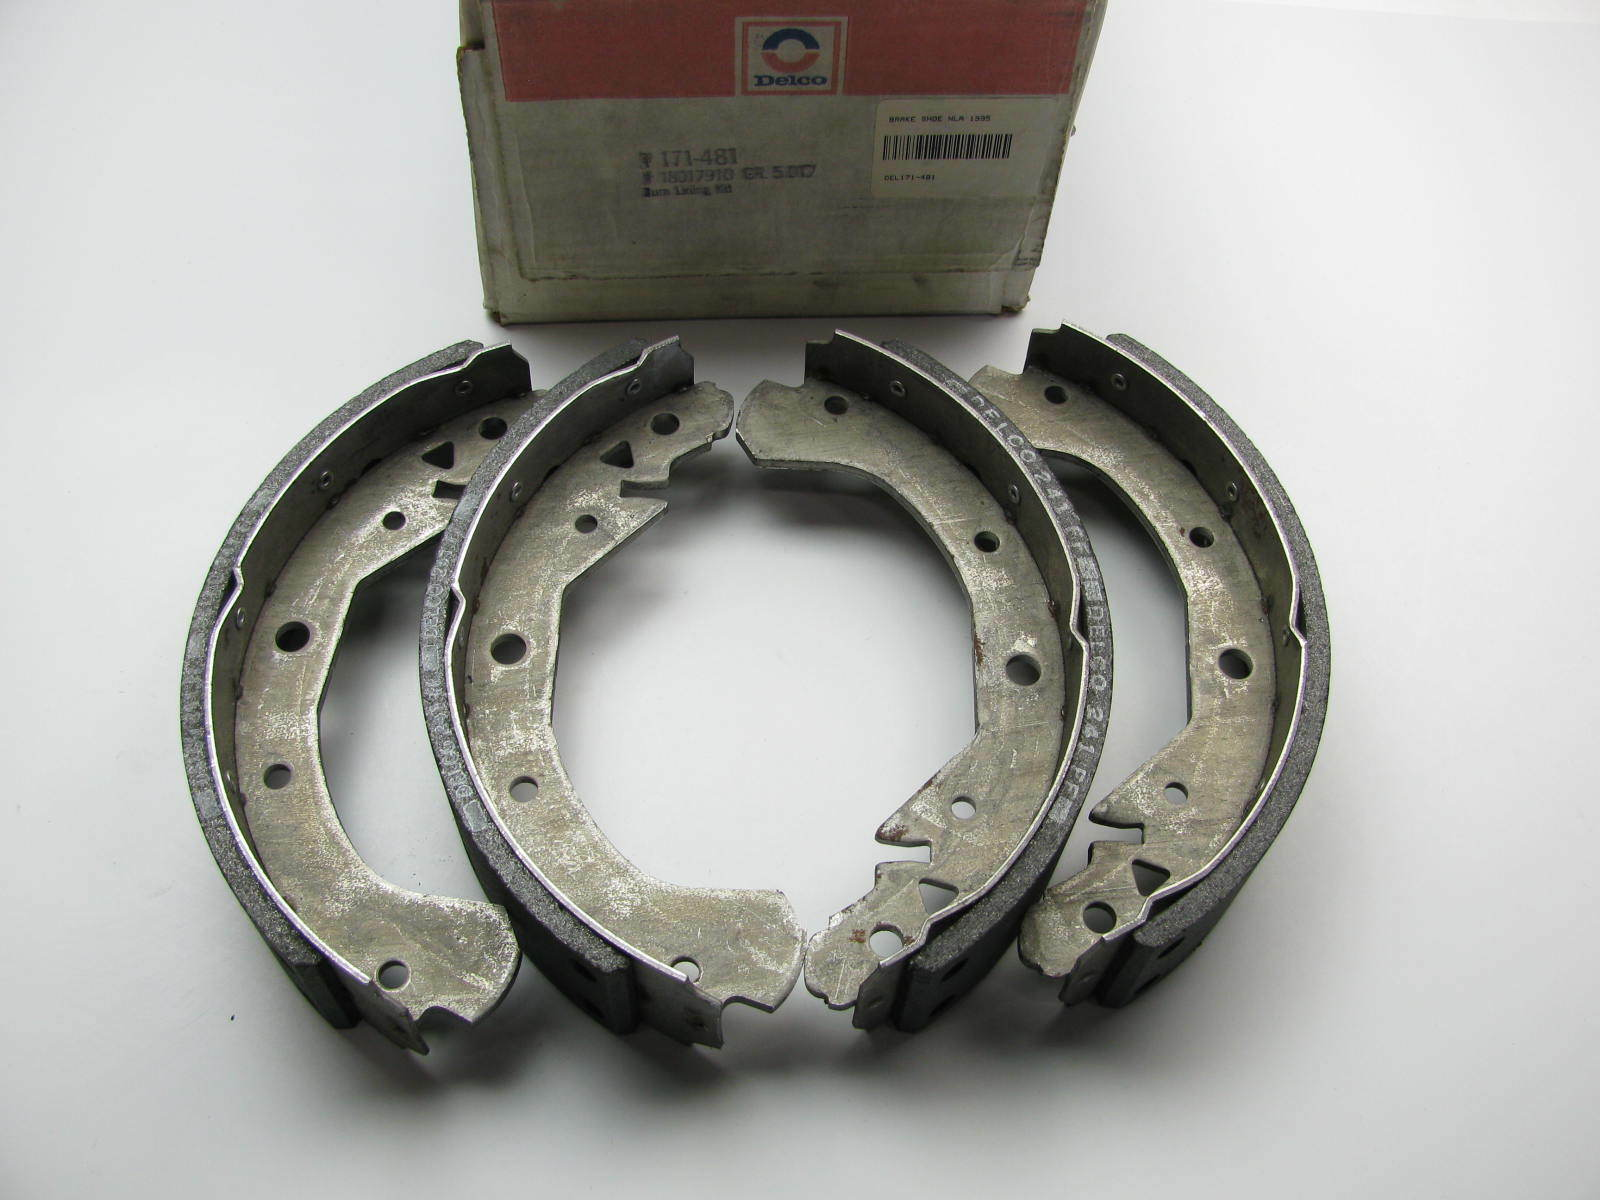 AcDelco 171-481 NOS OEM GM 18017910 Rear Drum Brake Shoes